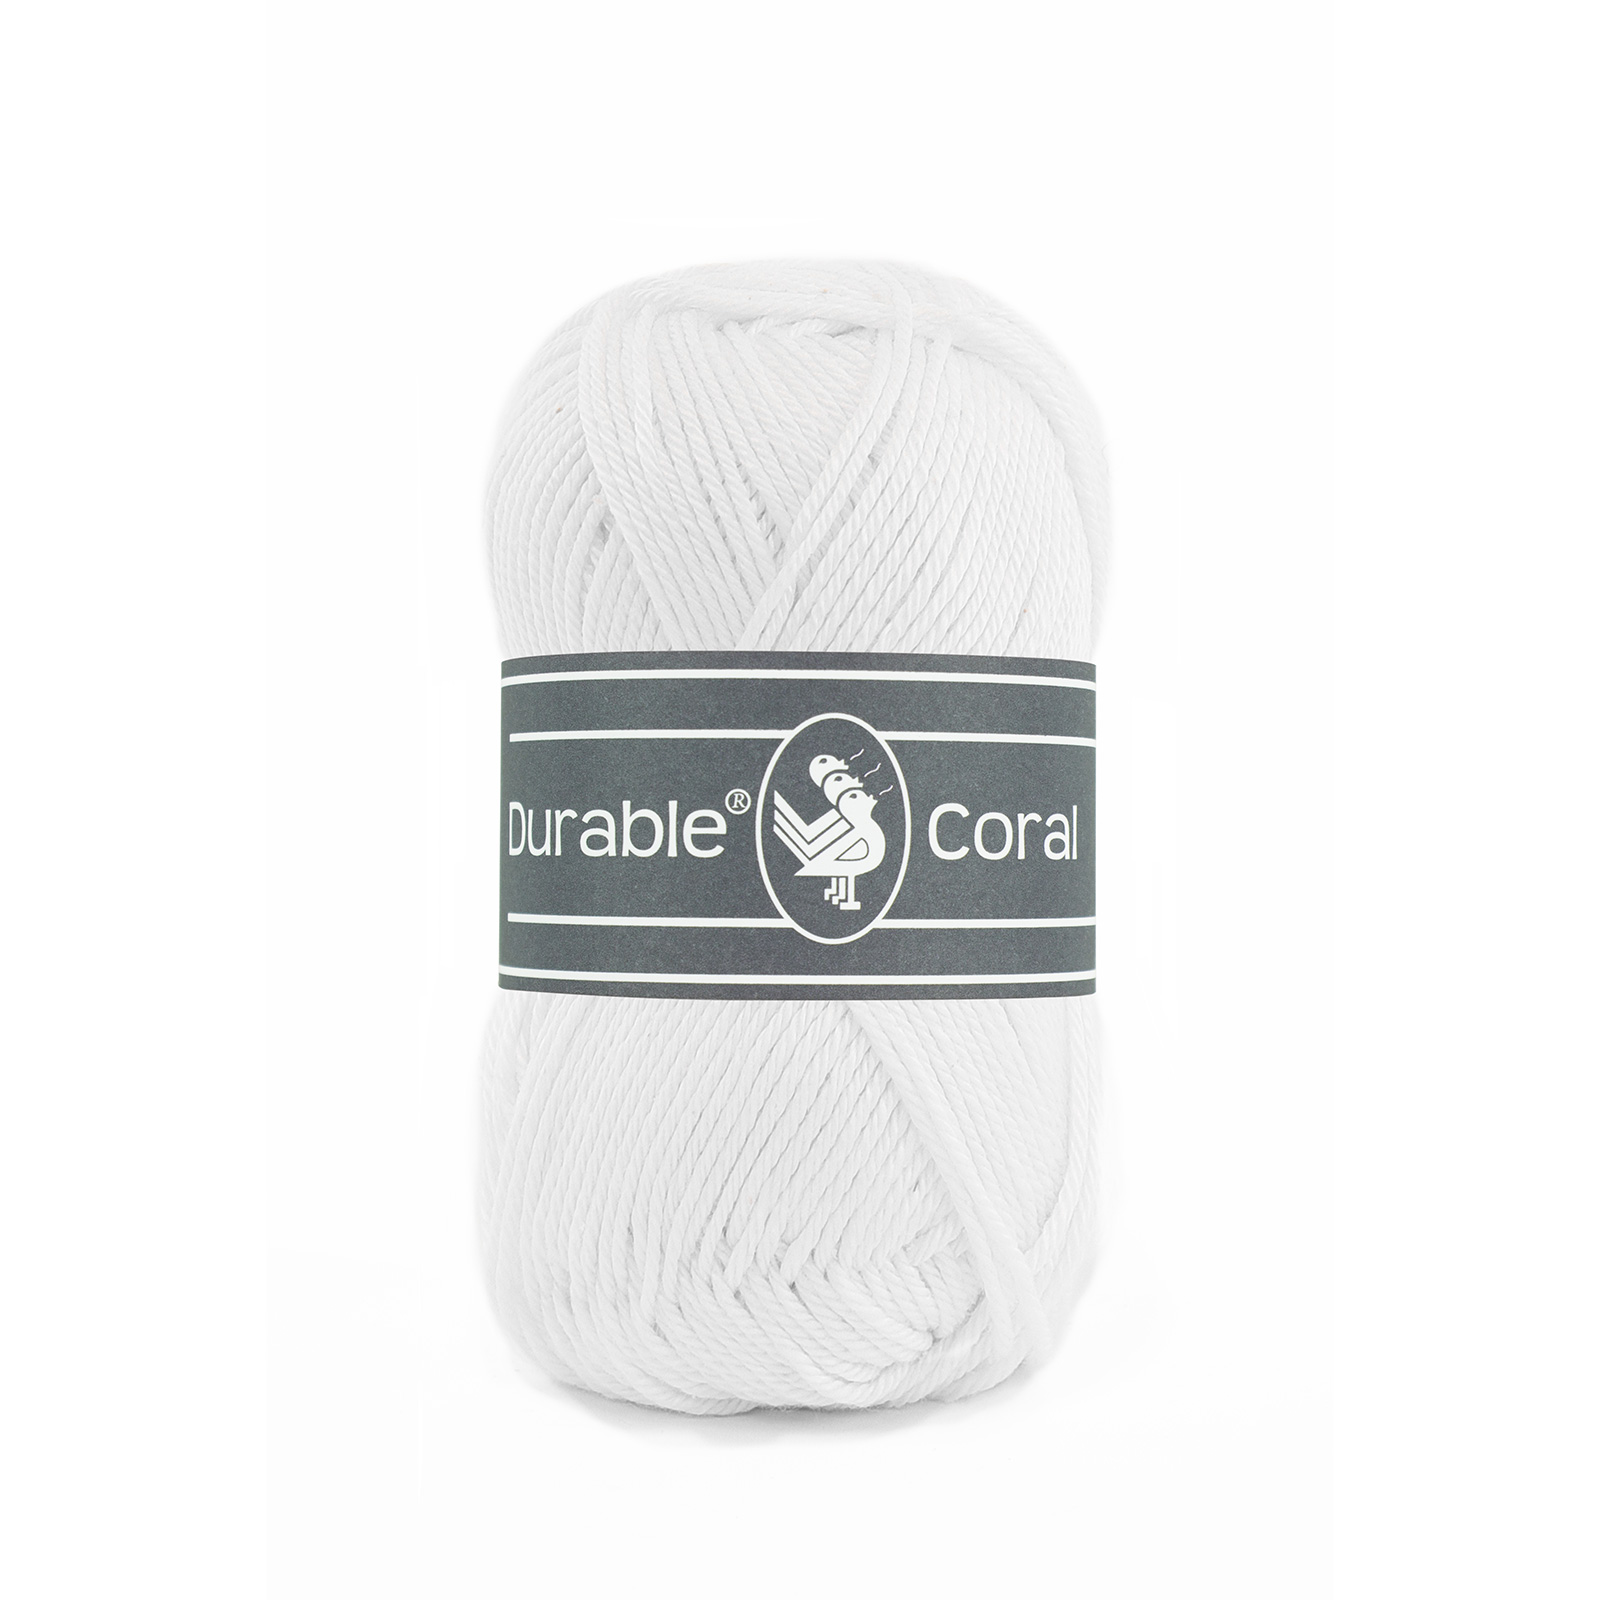 Durable Coral – 310 White